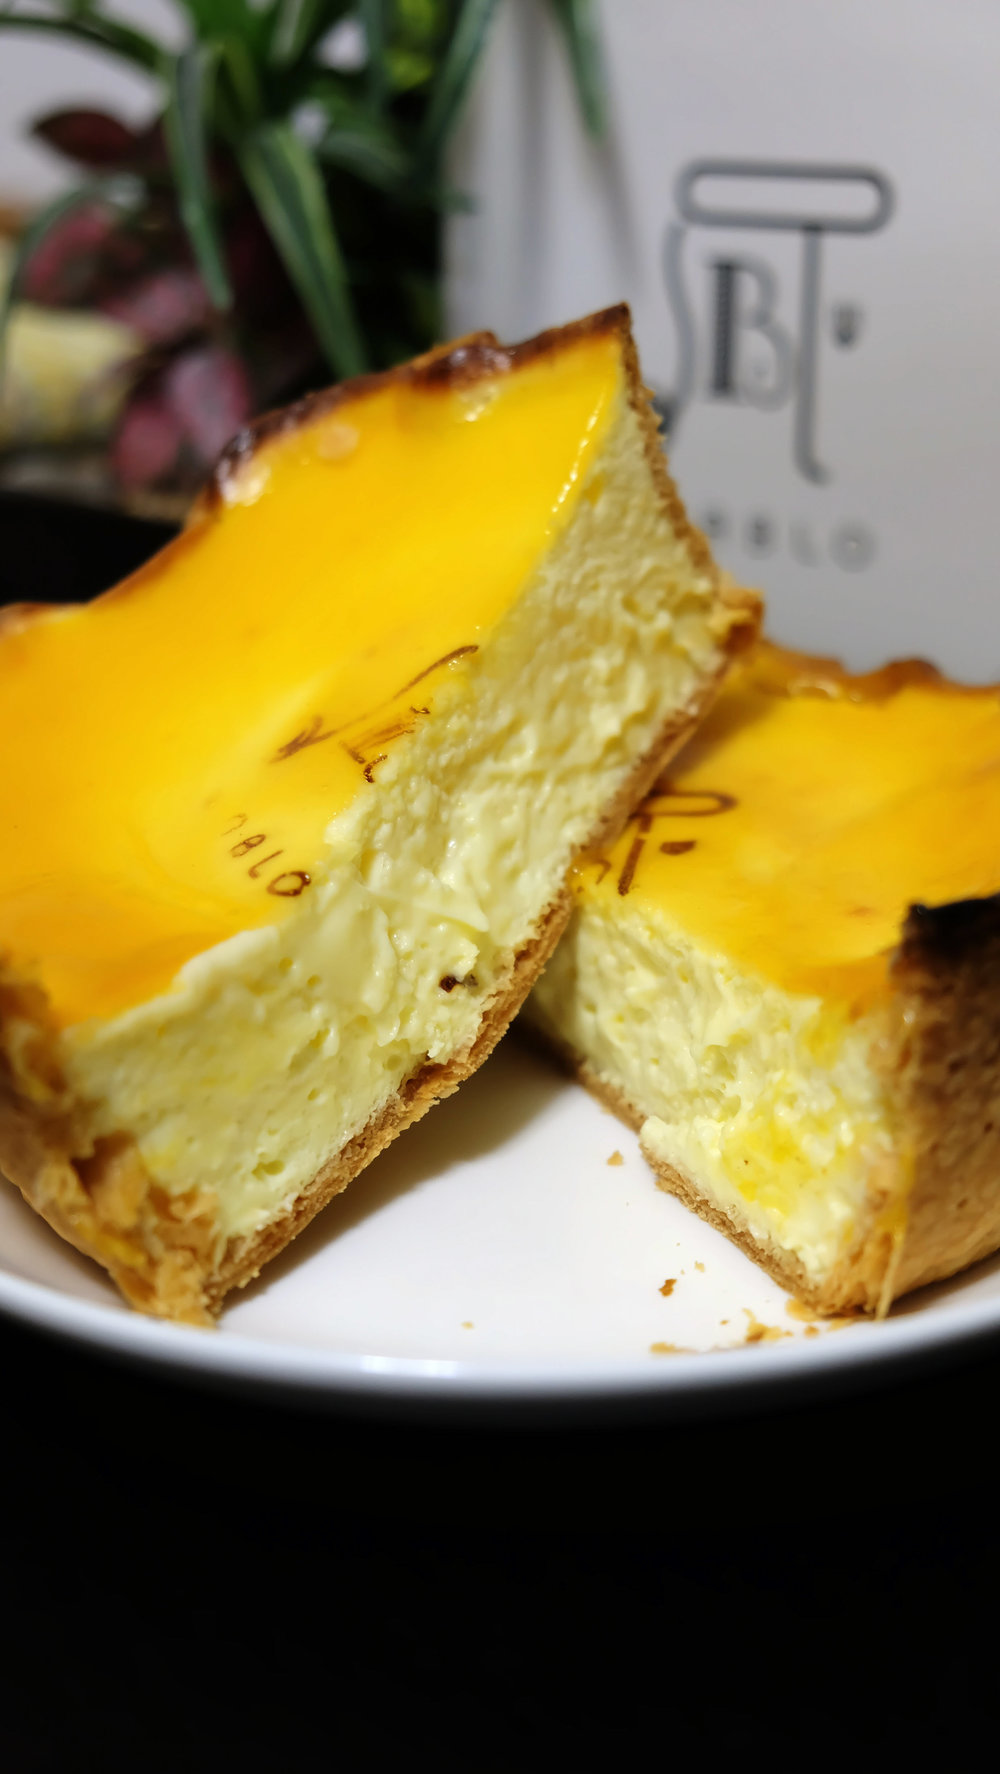 If you want to try the most perfect, fluffy crispy cheesecake in Osaka then look no further than Pablo Cheese cake. Look at that cross section!